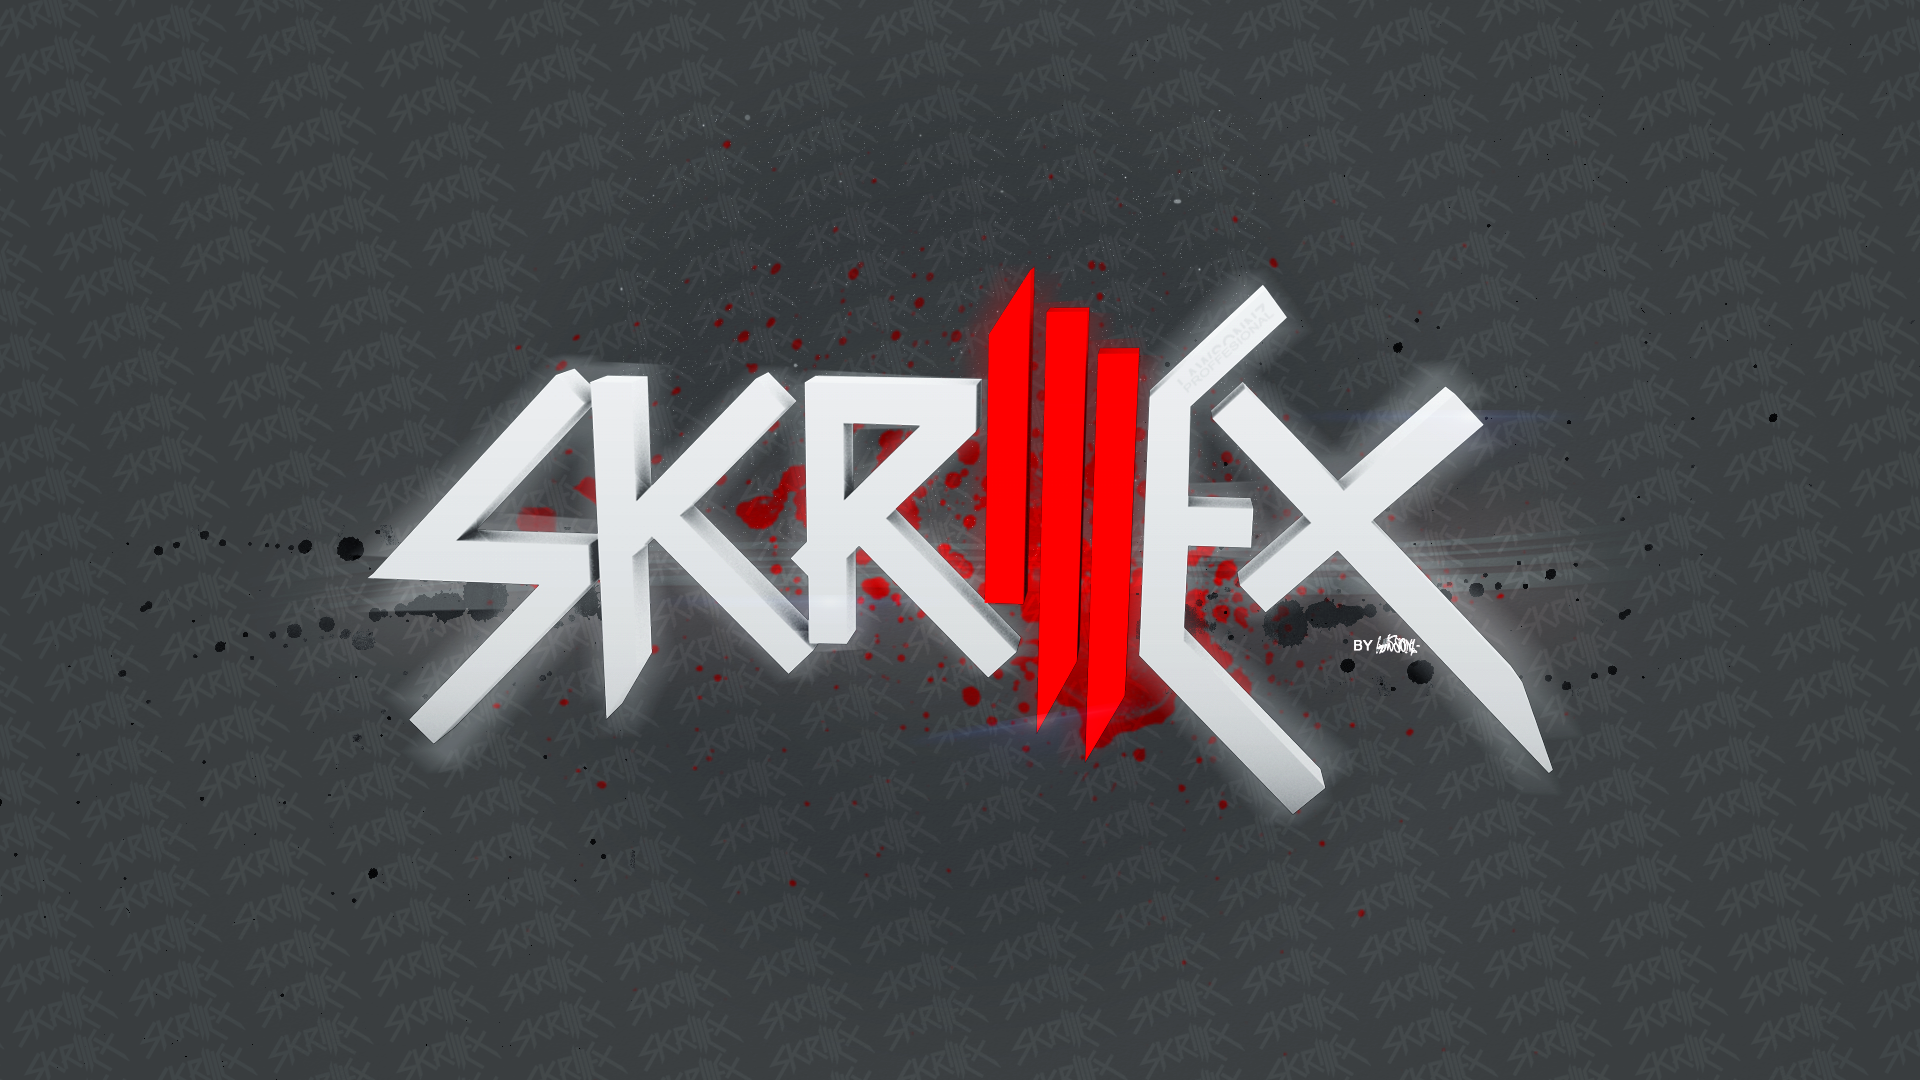 How To Create Bloody Dripping Skrillex Wallpaper Photoshop